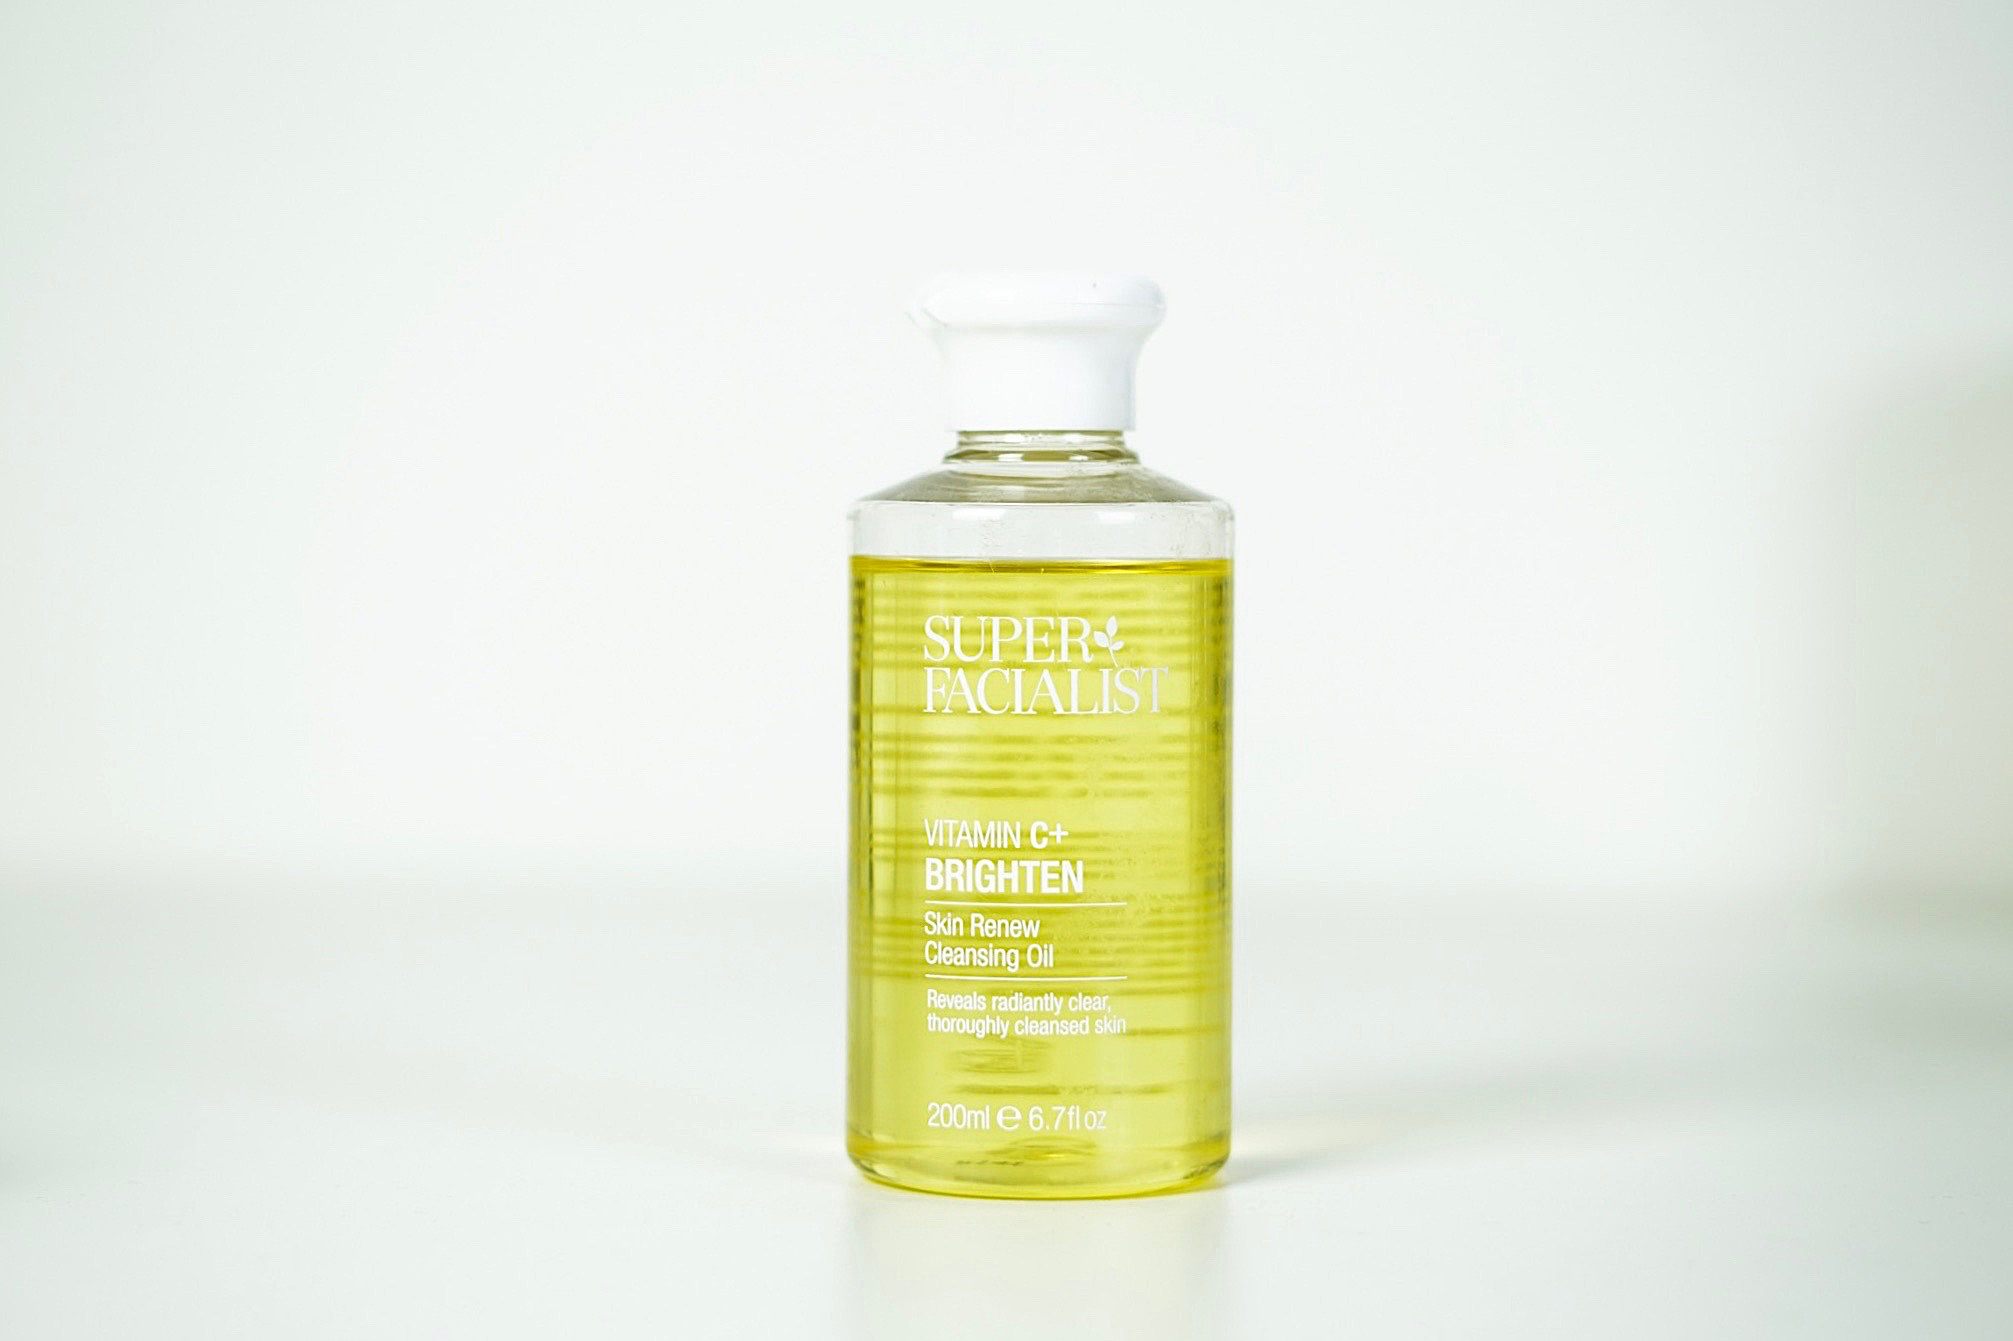 Featured: Super Facialist Vitamin C Cleansing Oil